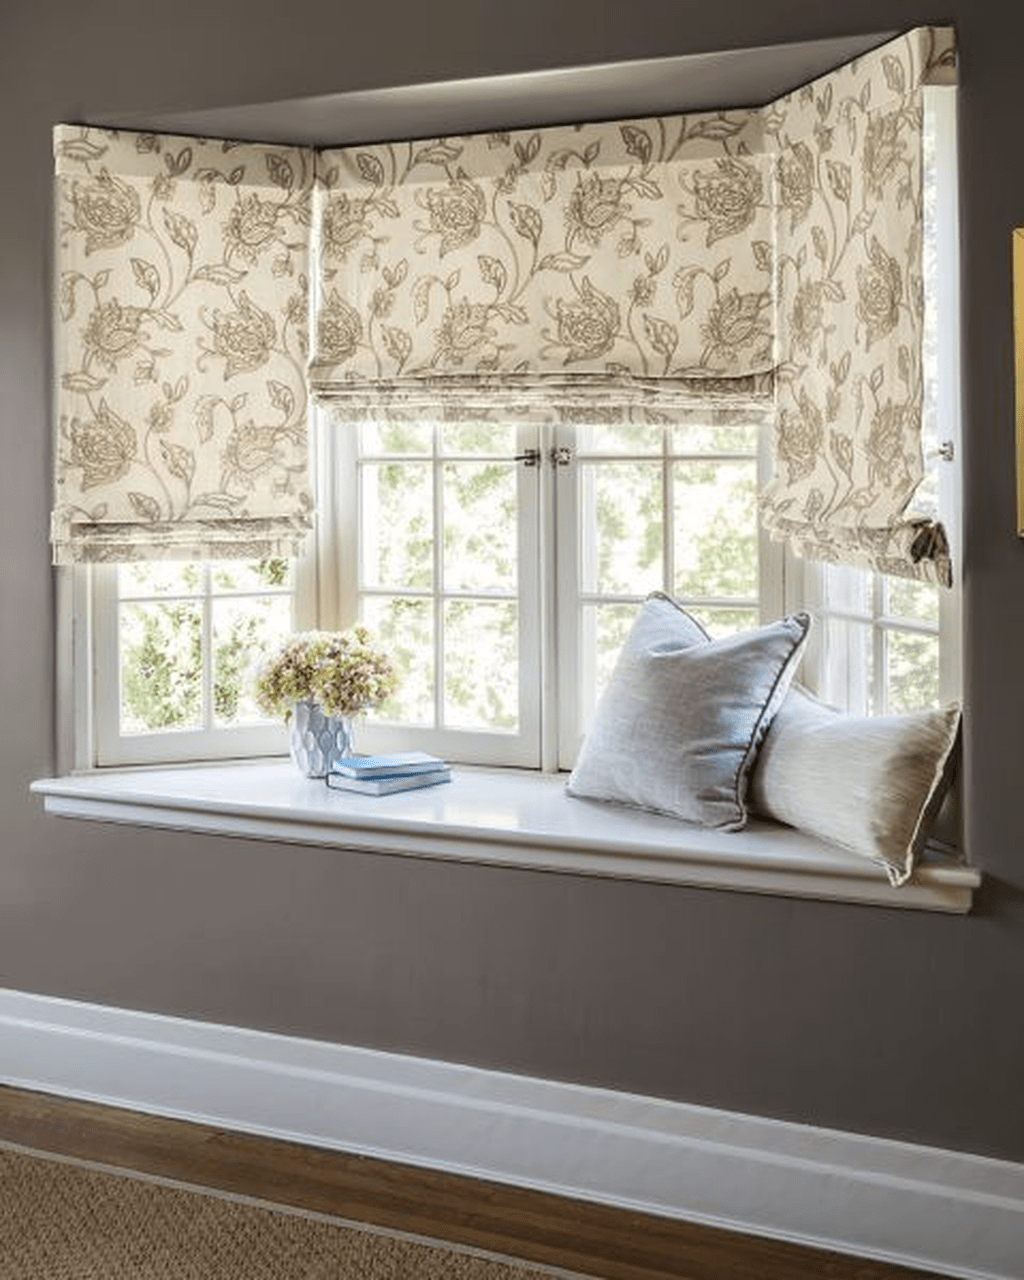 Awesome Curtain Ideas For Bay Window Living Room Eclectic: 30 Awesome Bay Window Design Ideas To Get Elegant Look In